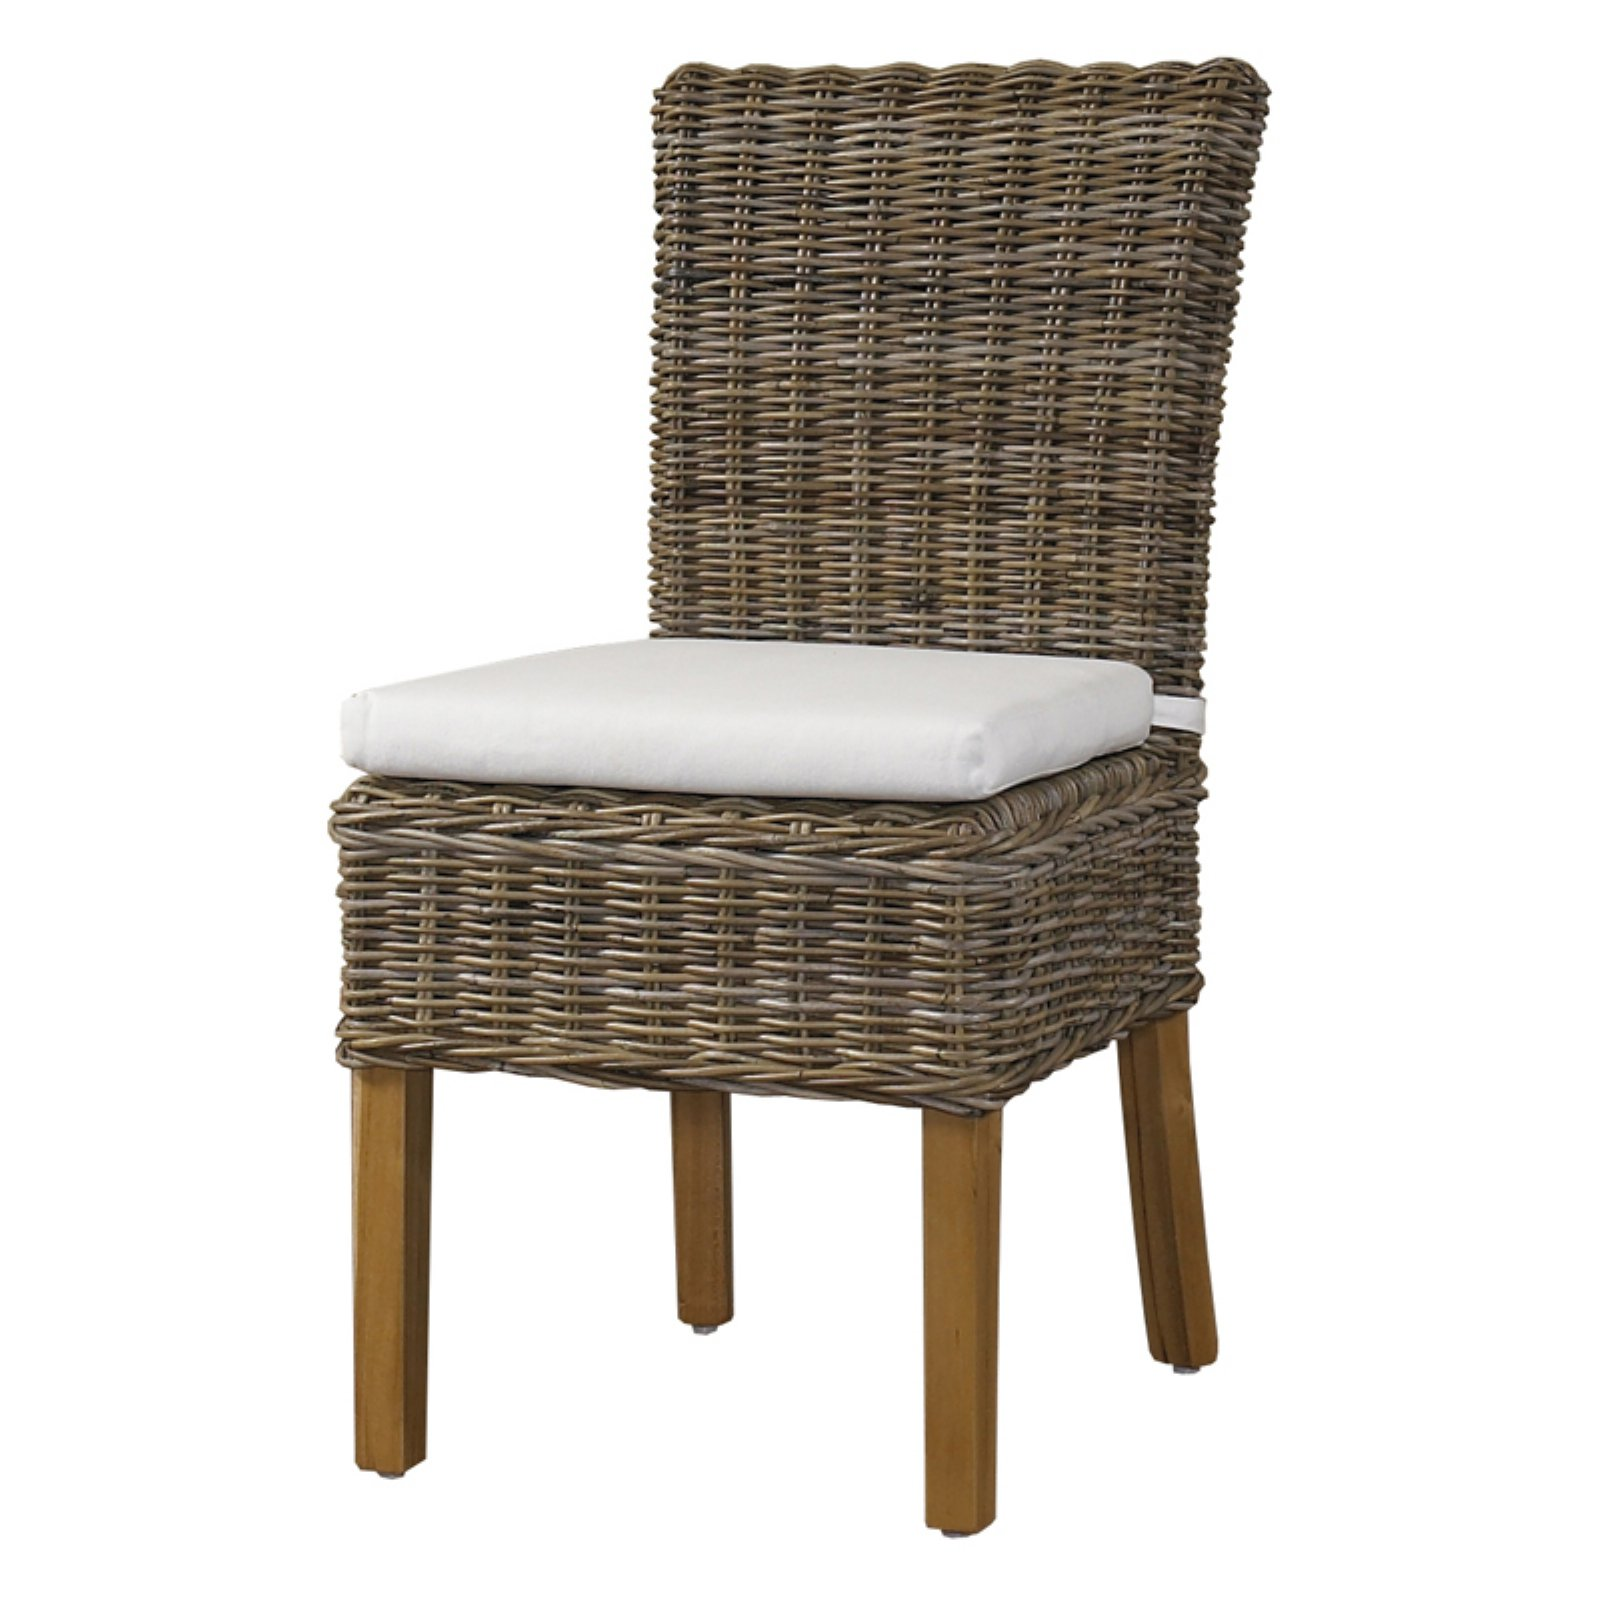 Padmas Plantation Boca Chair with Cushion